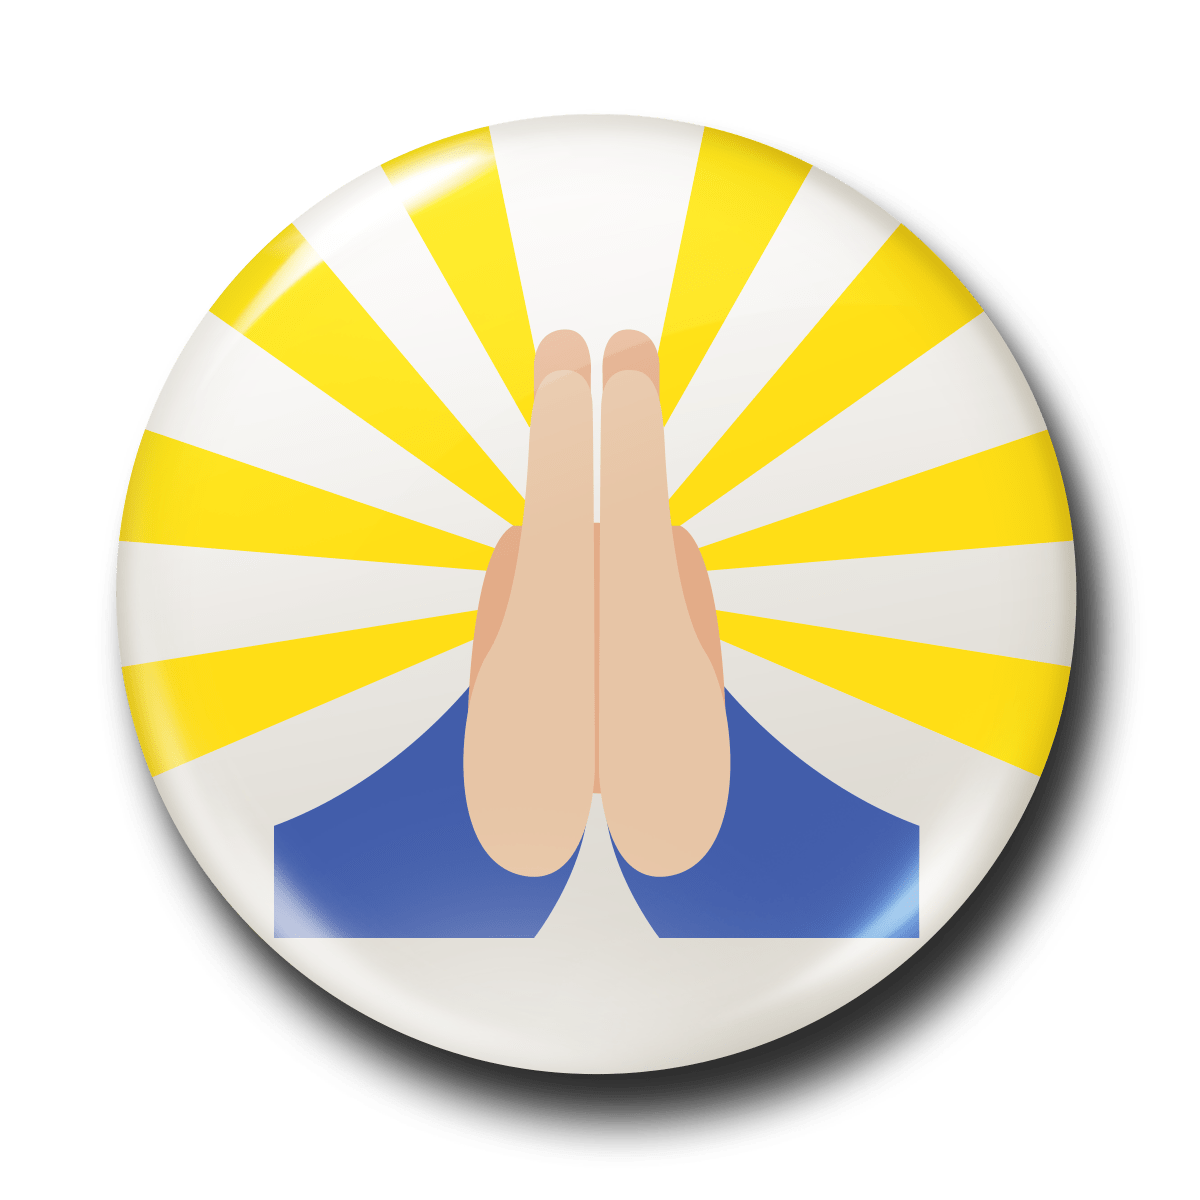 praying hands emoji - HD 1200×1200